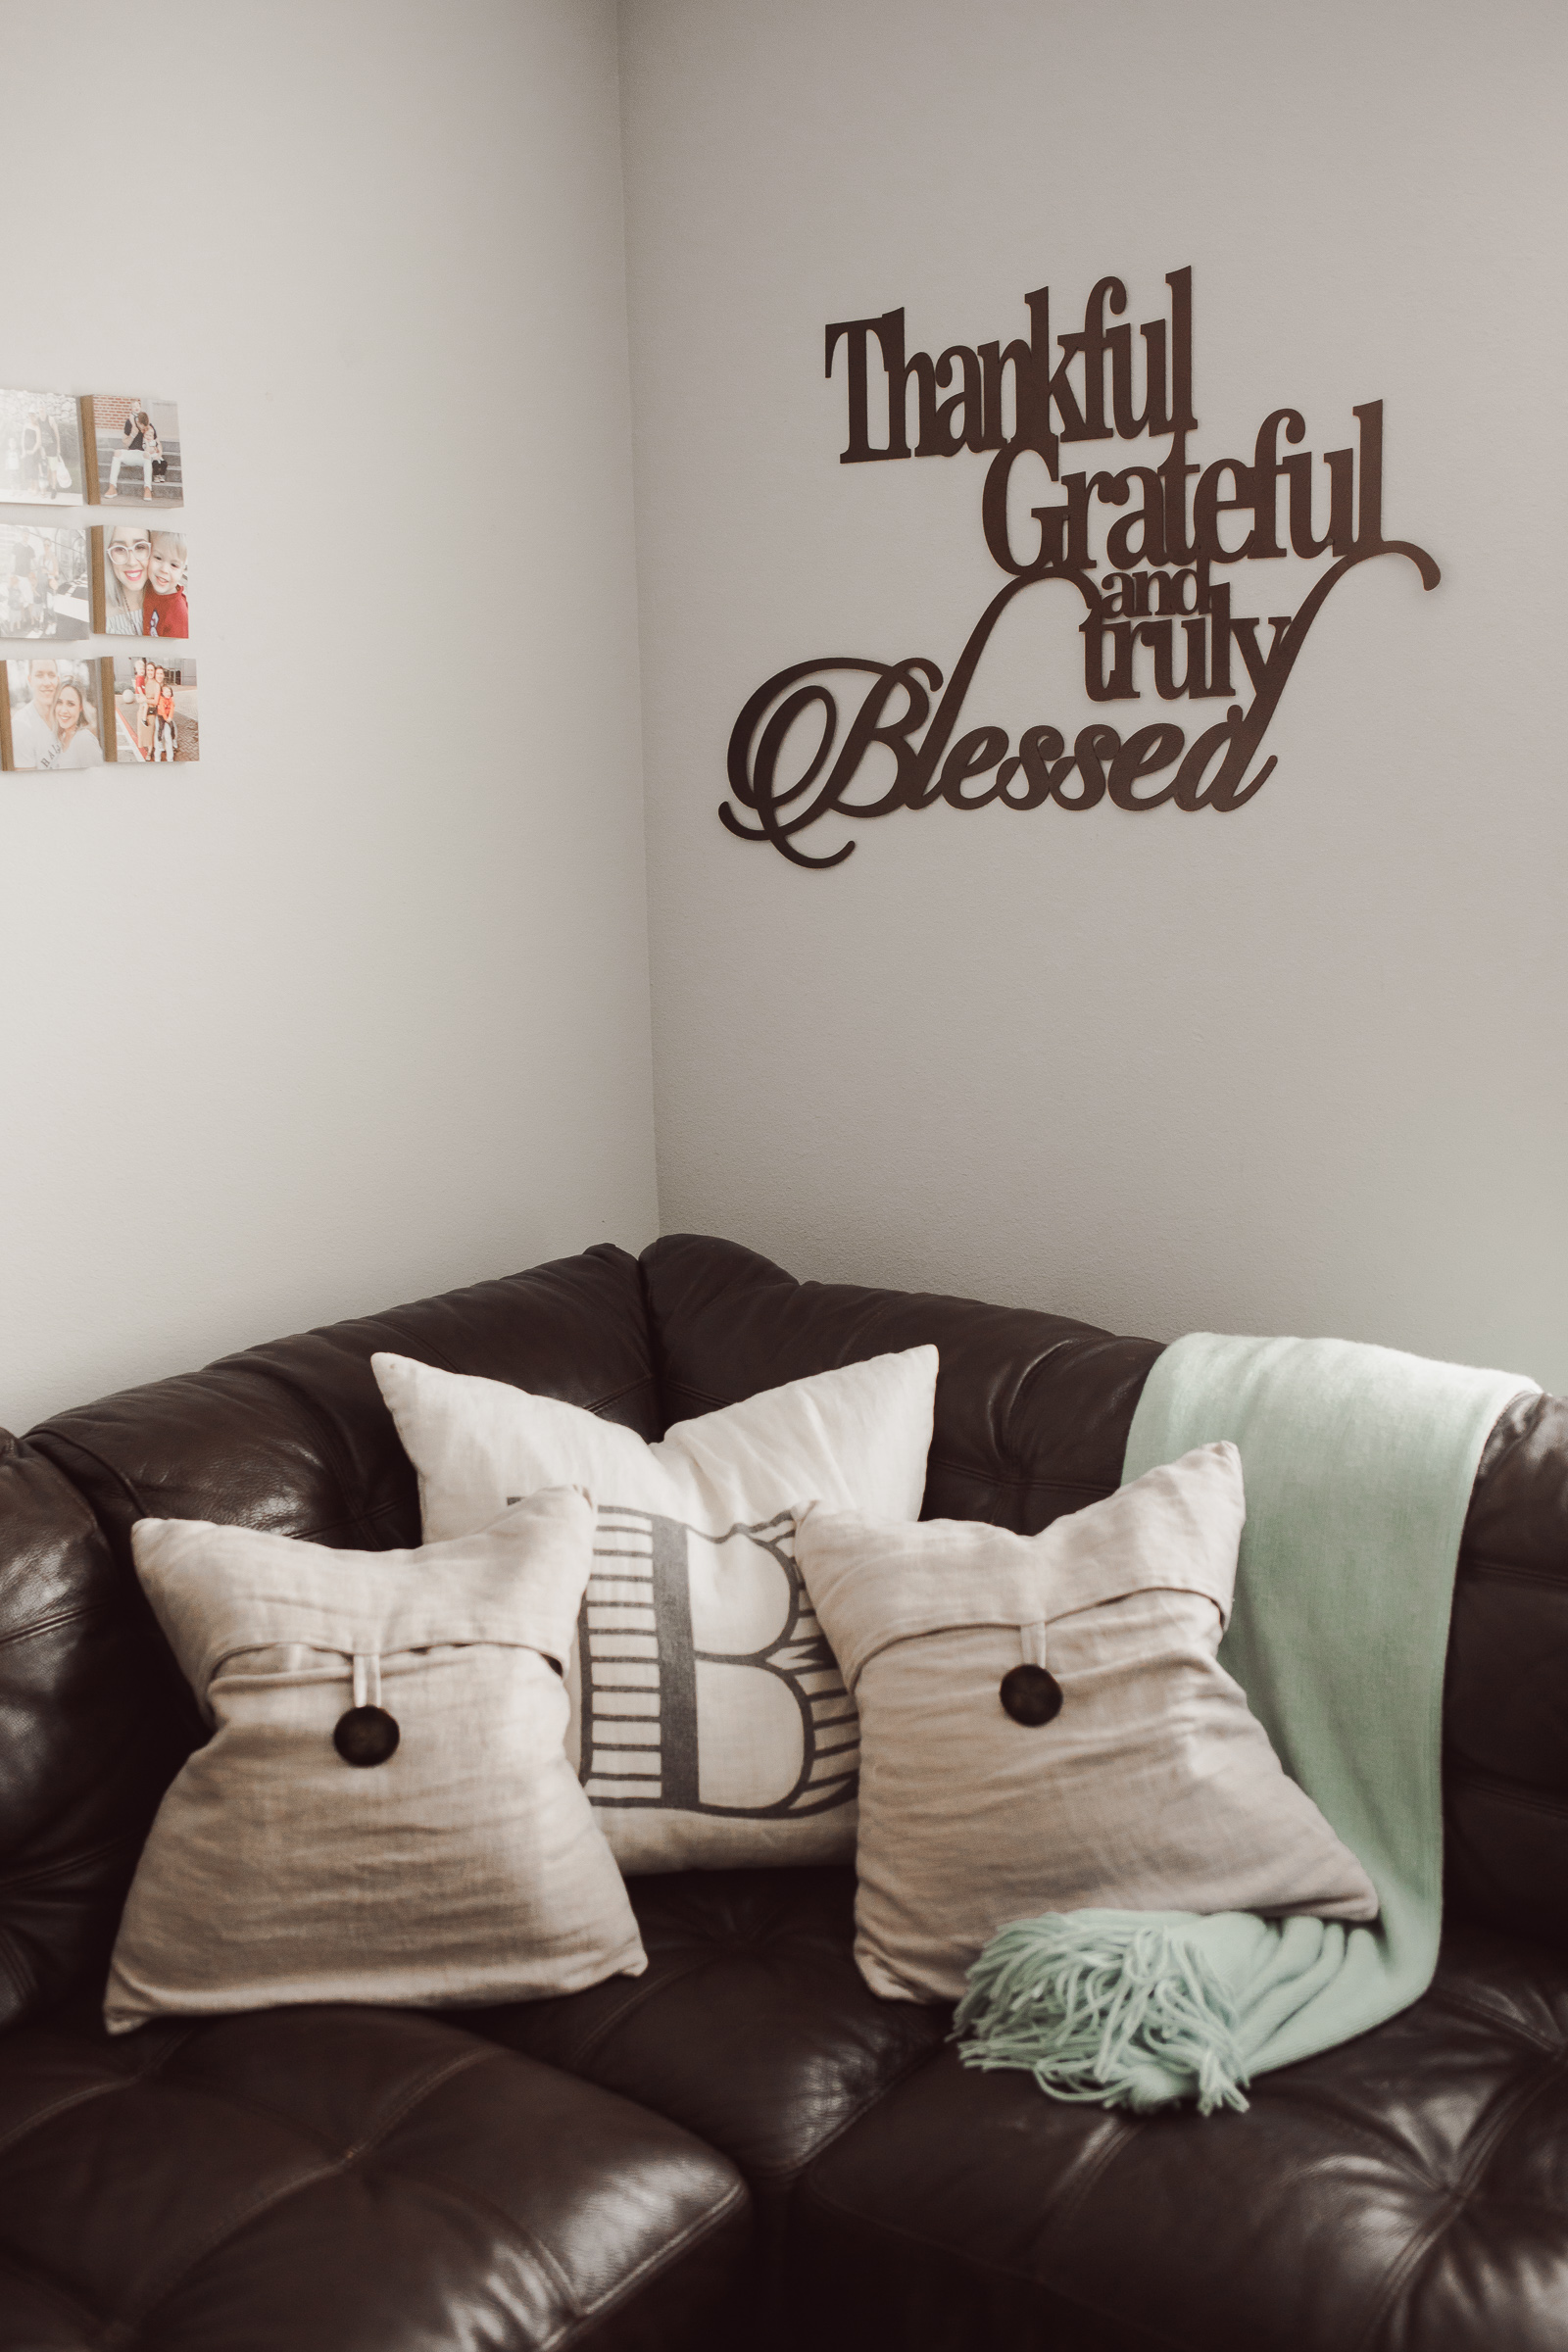 Houston lifestyle blogger Uptown with Elly Brown shares a metal wall art plaque in her game room